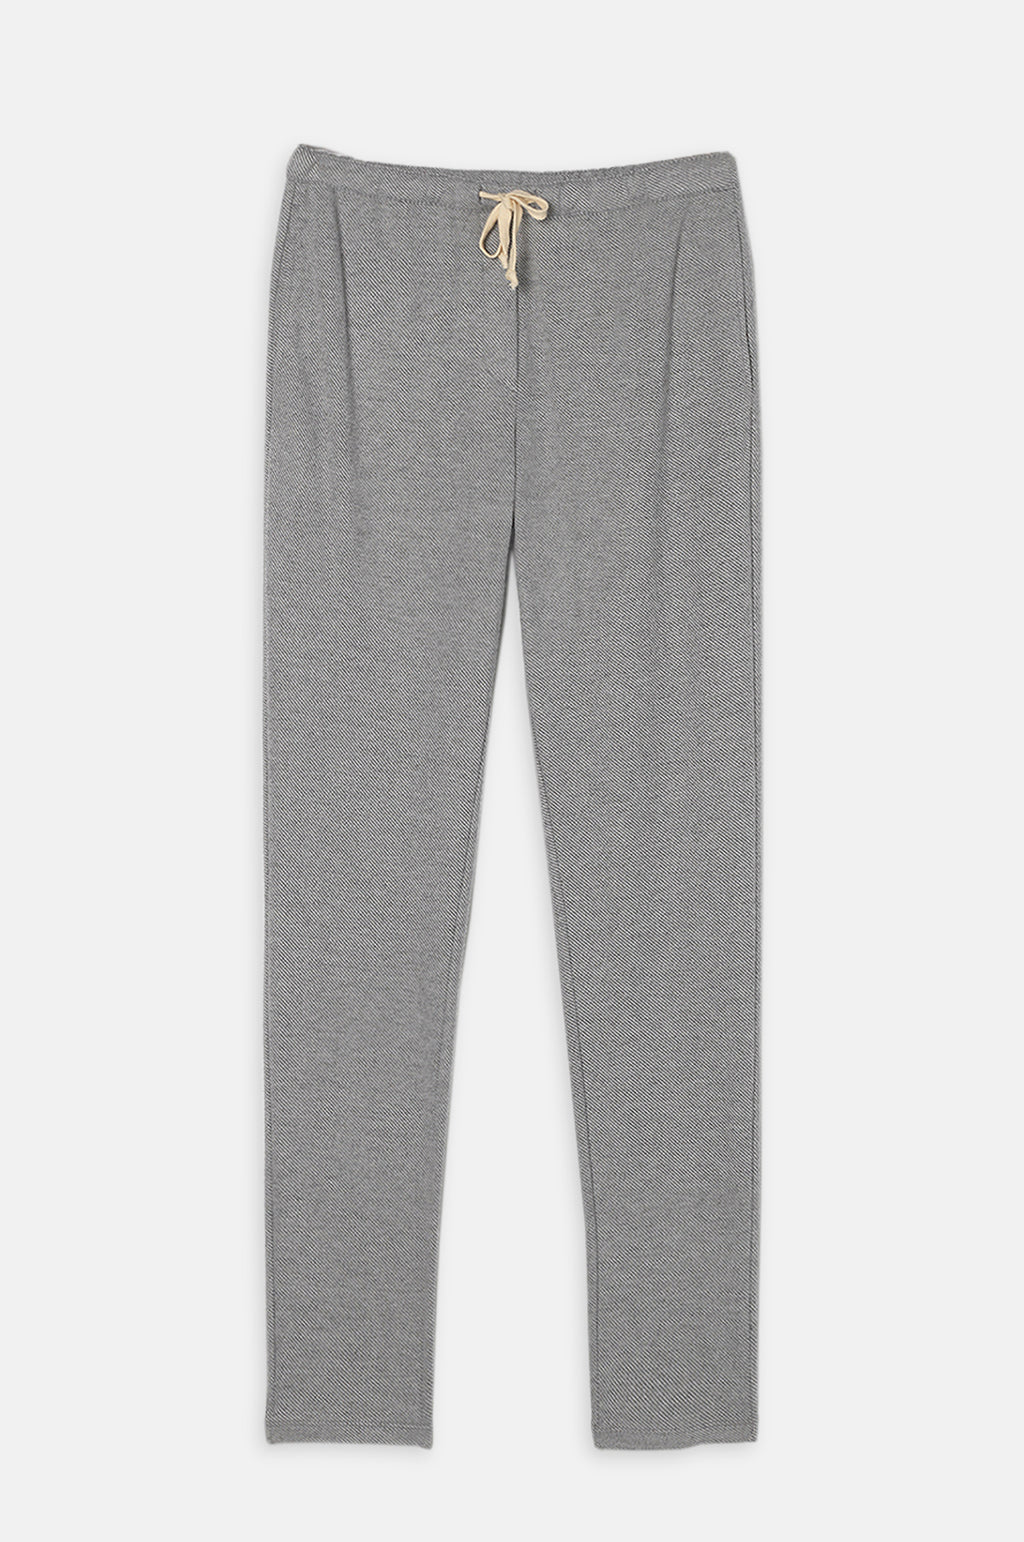 Feelgood Joggers in Heather Grey